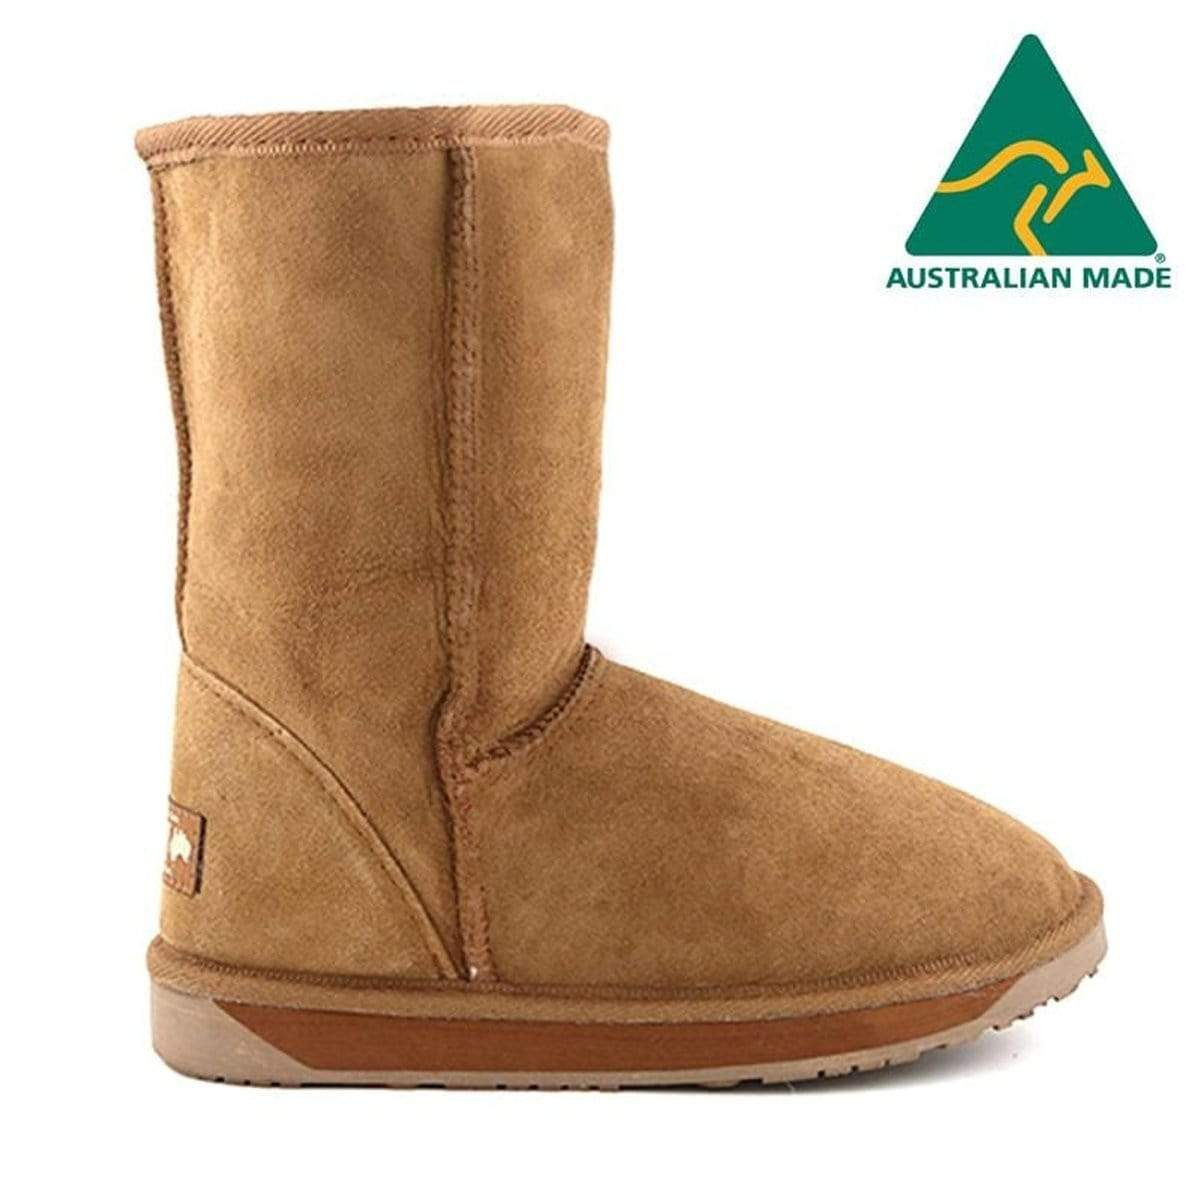 UGG Premium Short Classic - Made in Australia